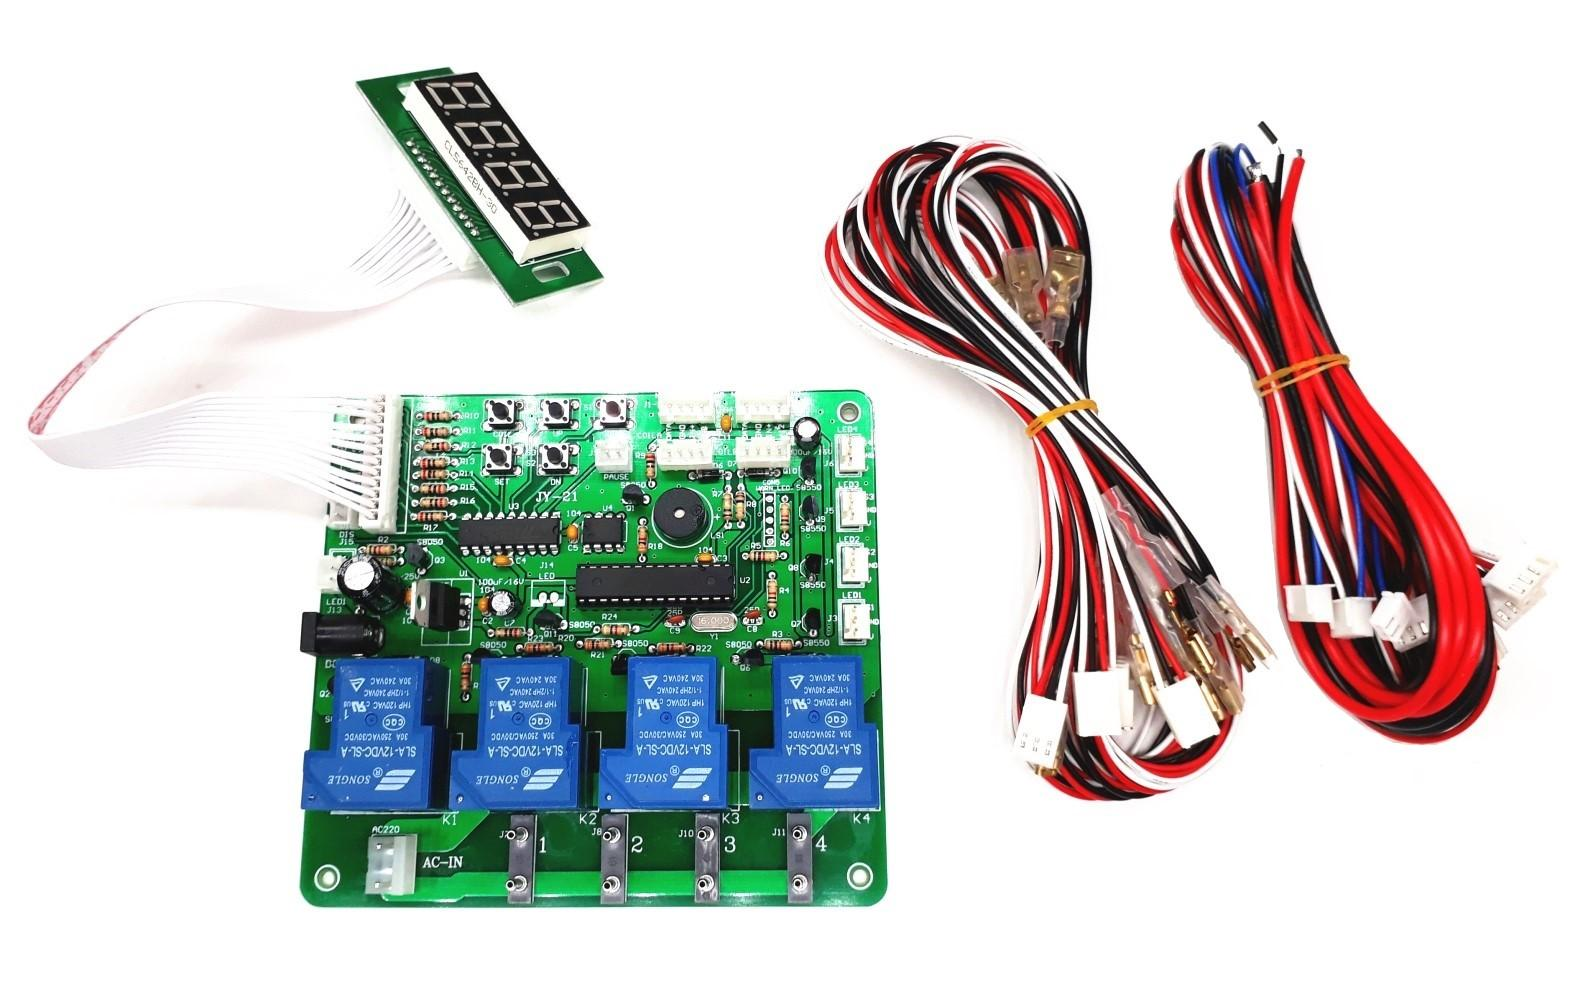 Juyao Electronic Automotive Electronics Pcb Assembly Circuit Board With Components Jy 21 4 Digits 1 Devices Banknotes Coins Operated Timer Time Control For Car Washing Machine Vending Machine234700